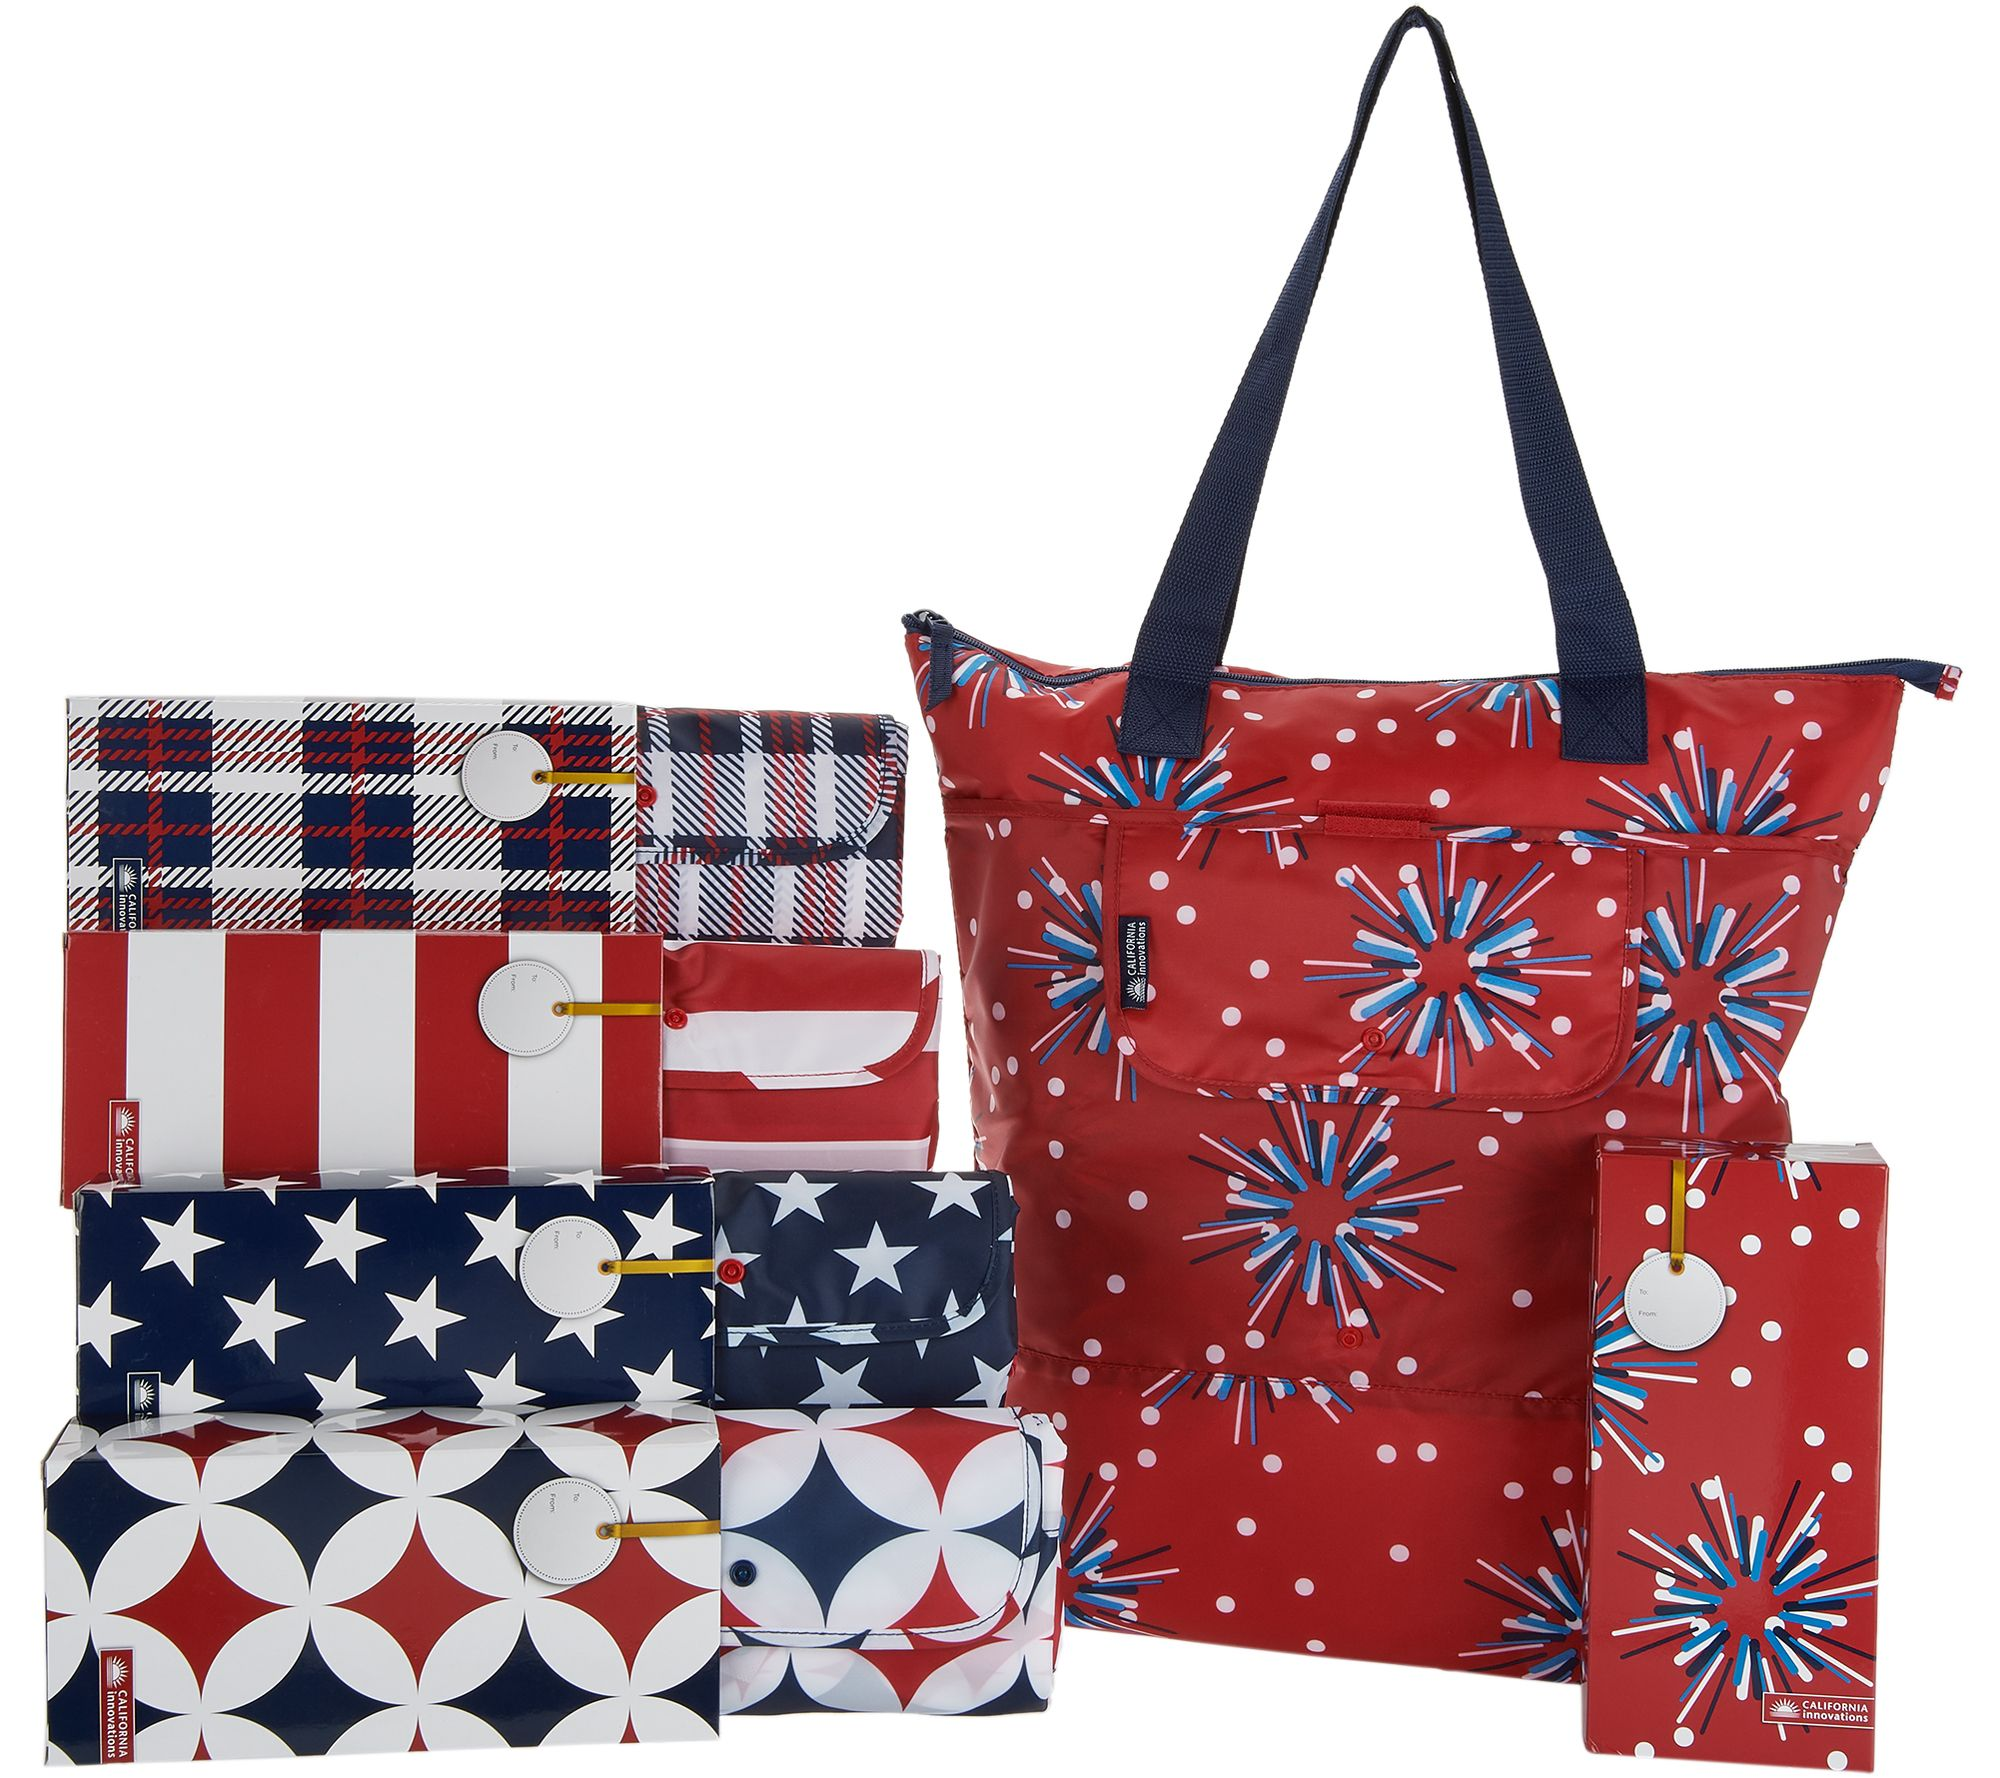 1cc9417c948b California Innovations Set of 5 2-in-1 Insulated Totes with Gift Boxes —  QVC.com